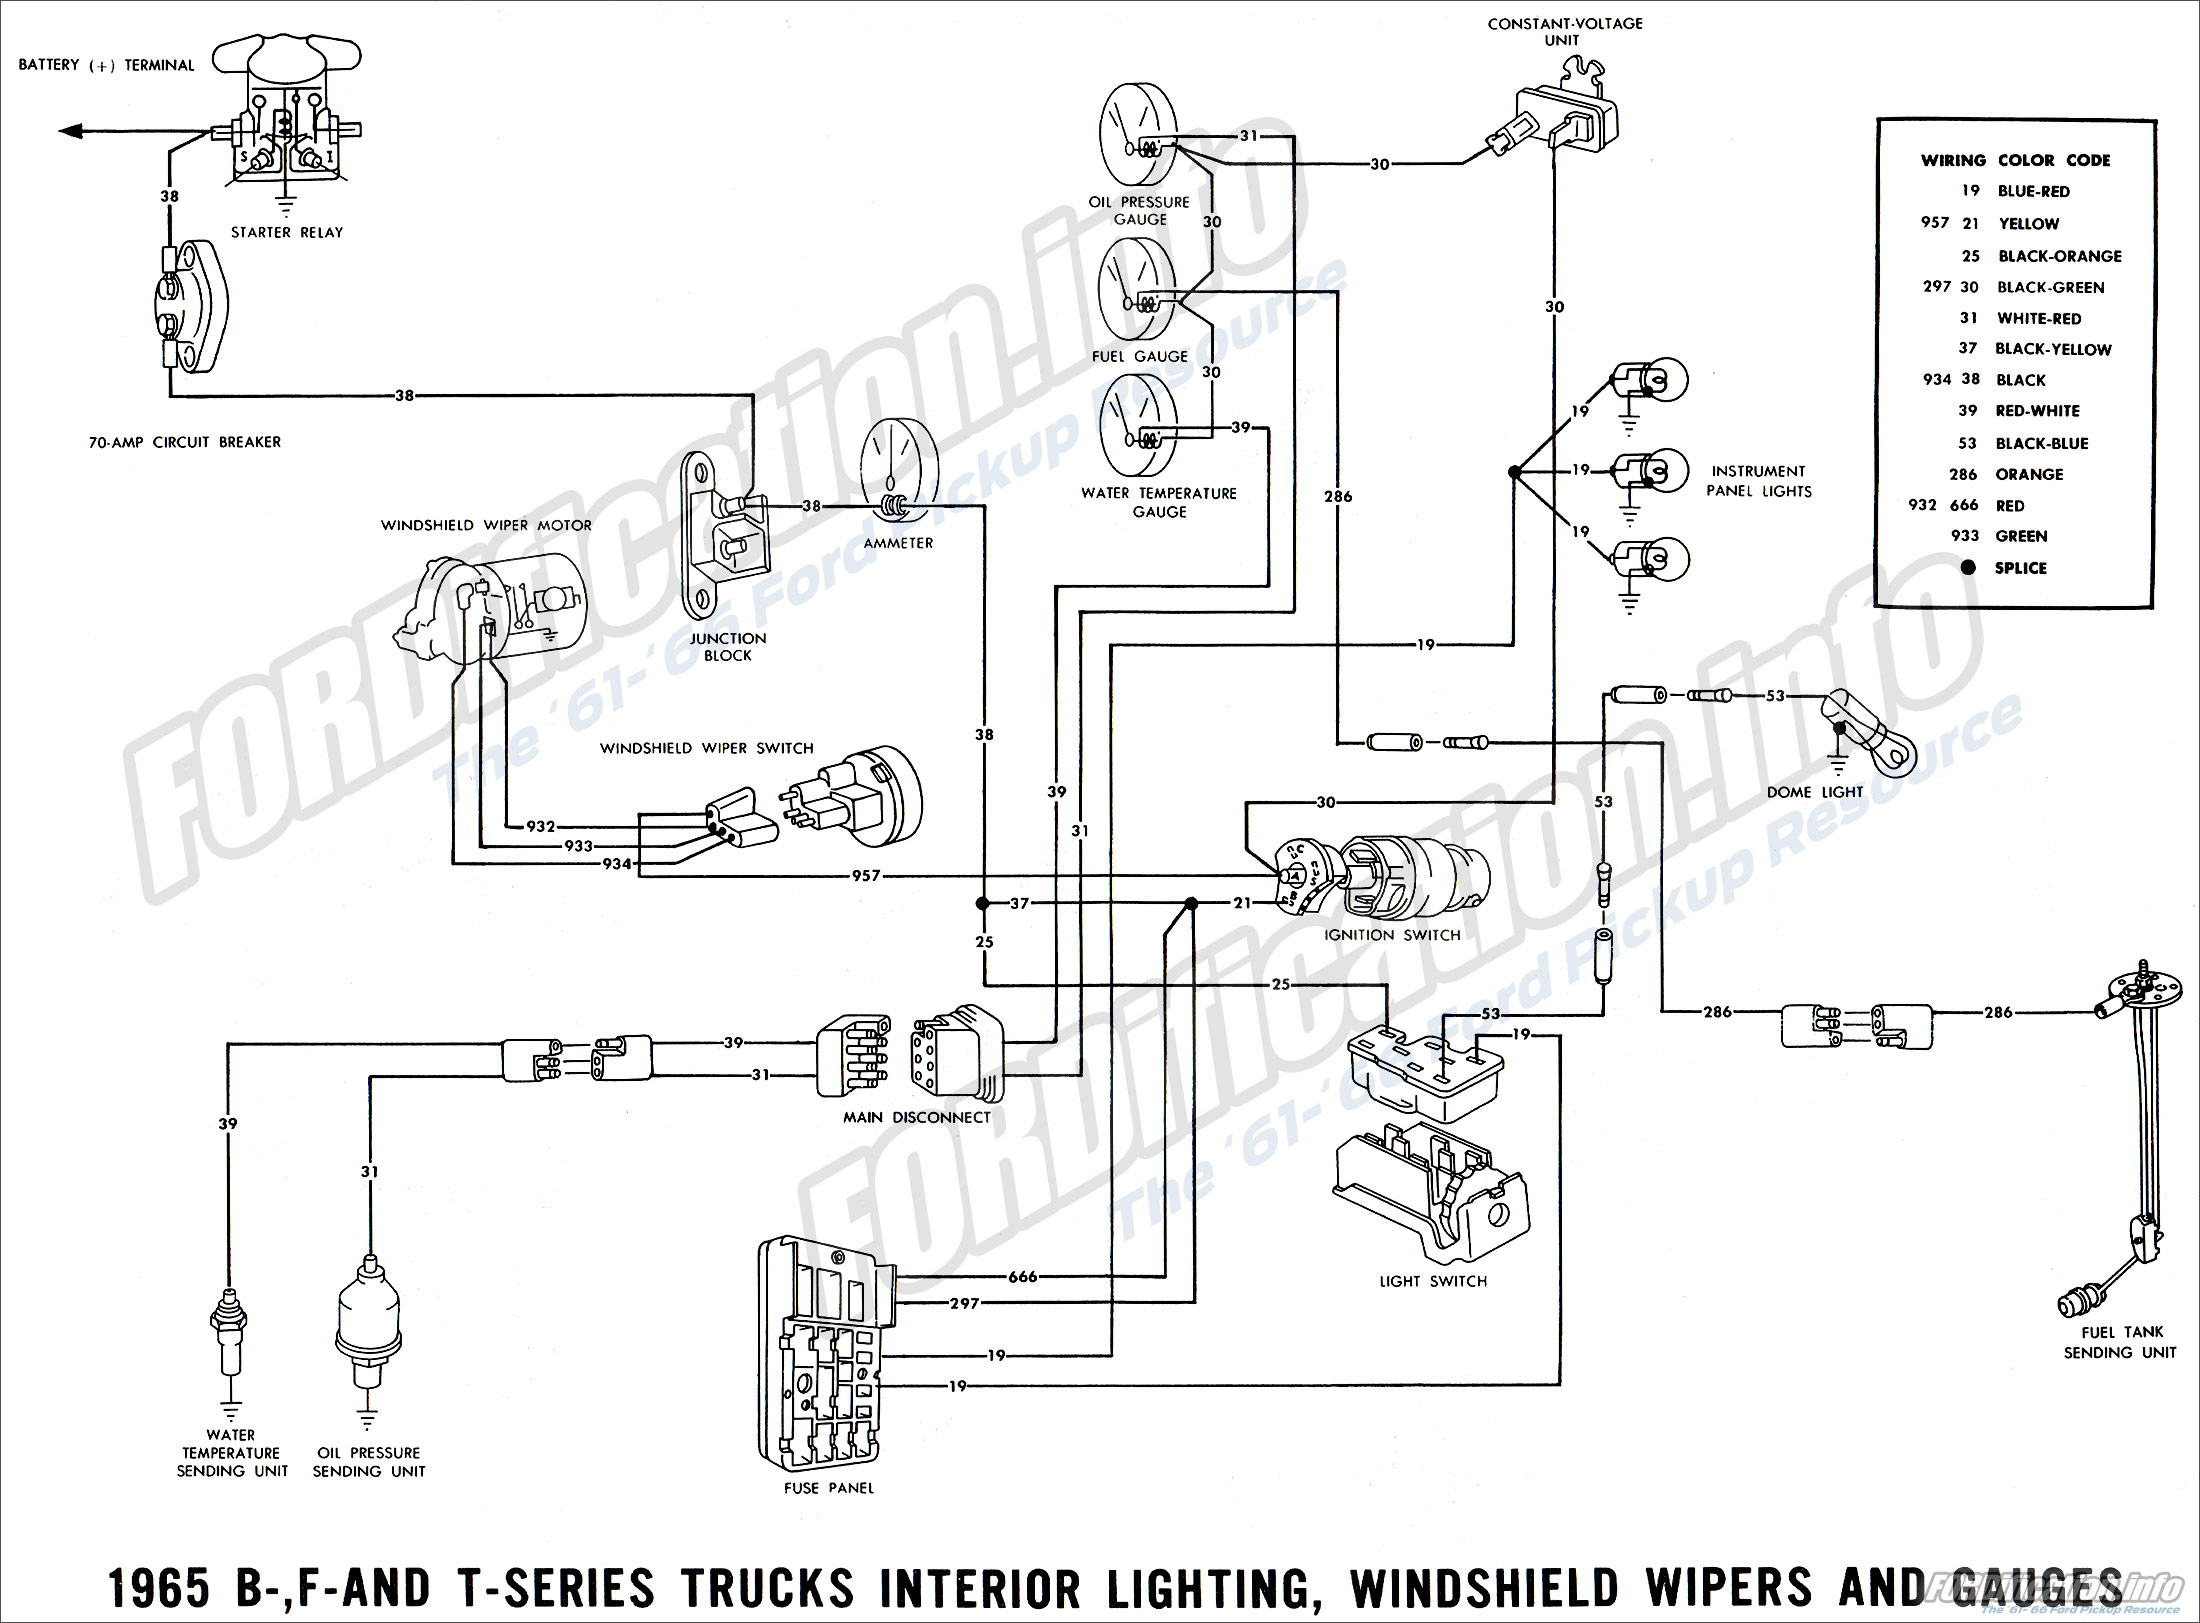 1965 ford truck wiring diagrams fordification info the 61 66 rh fordification info 1965 ford f100 wiring diagram 1965 ford galaxie wiring diagram